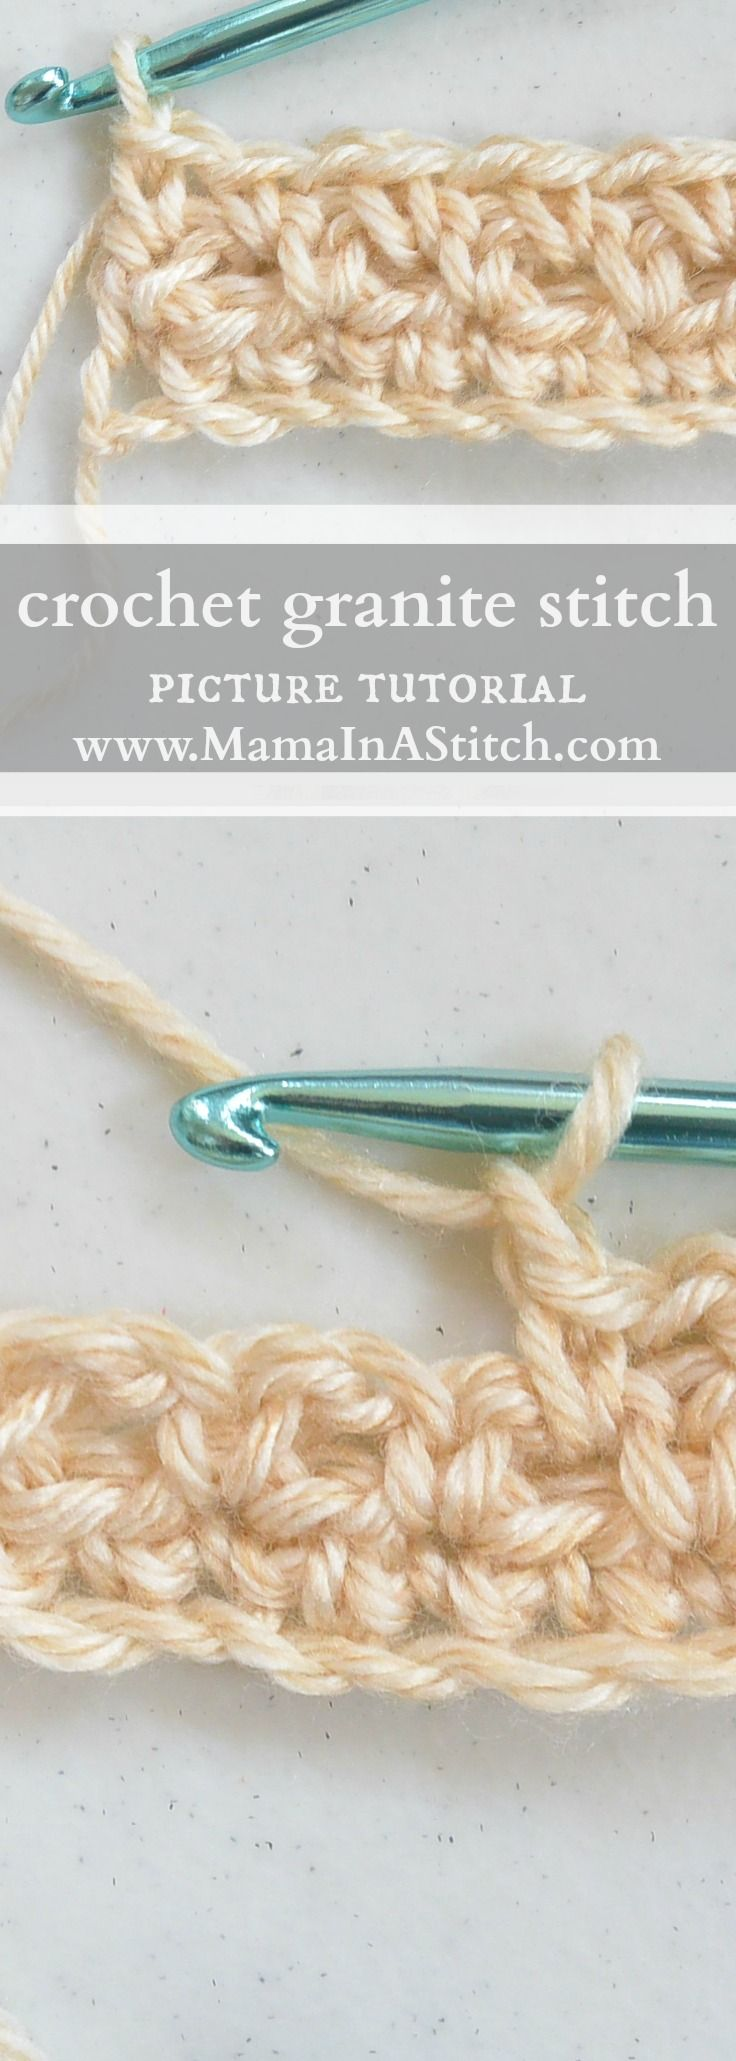 How To Crochet the Granite or Moss Stitch | Almofada leila ...